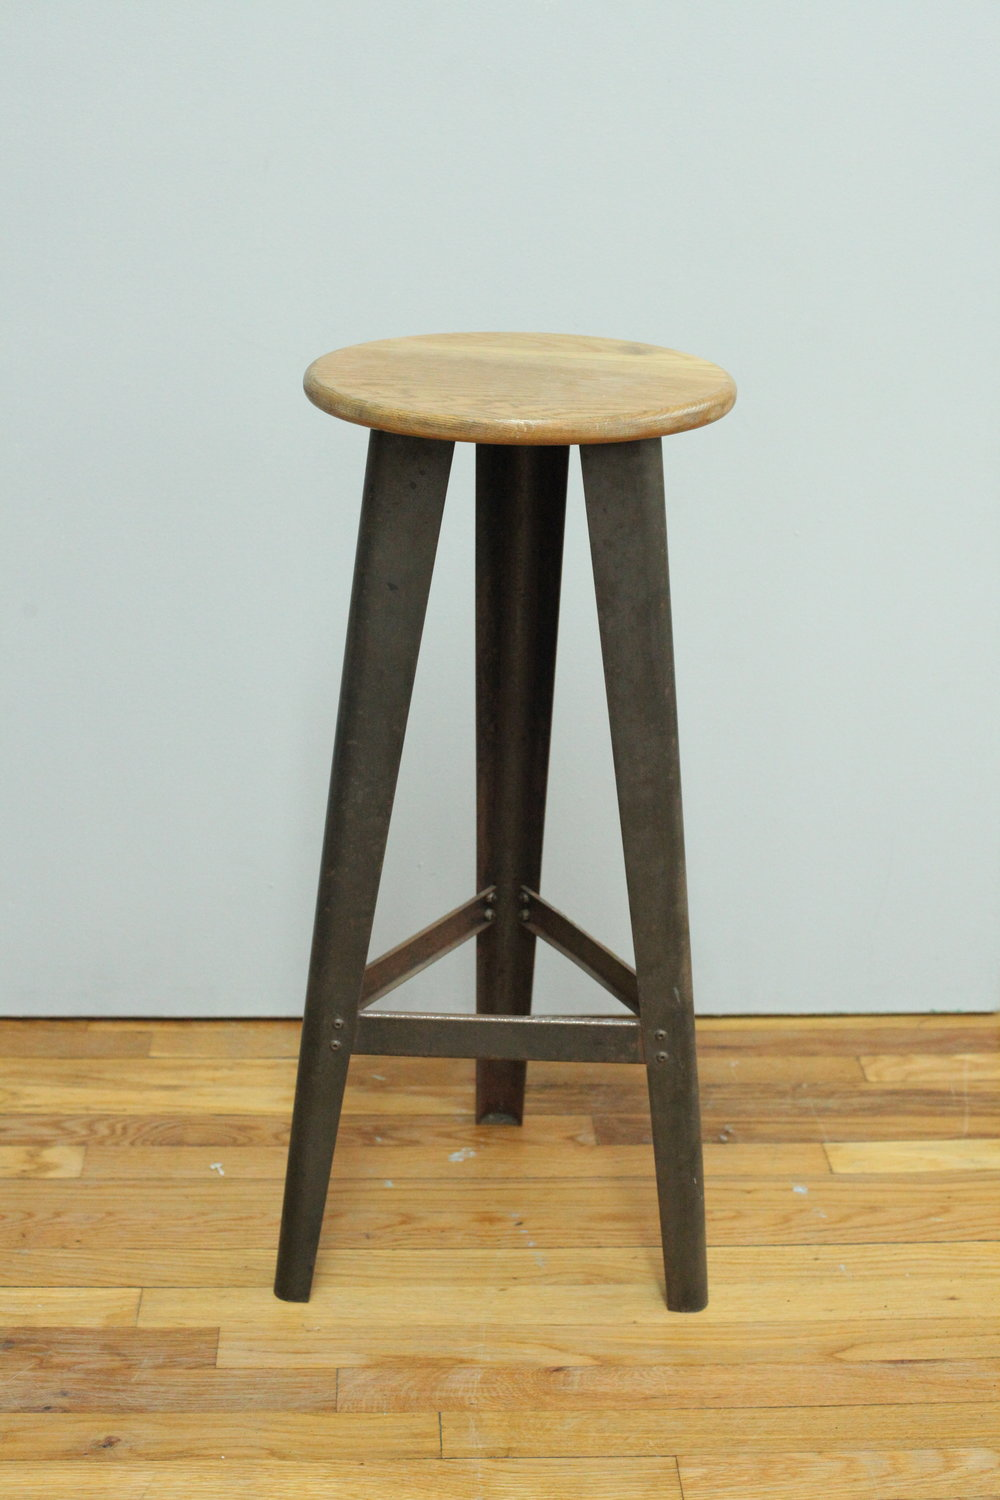 Prouve/Perriand Style stool  $200